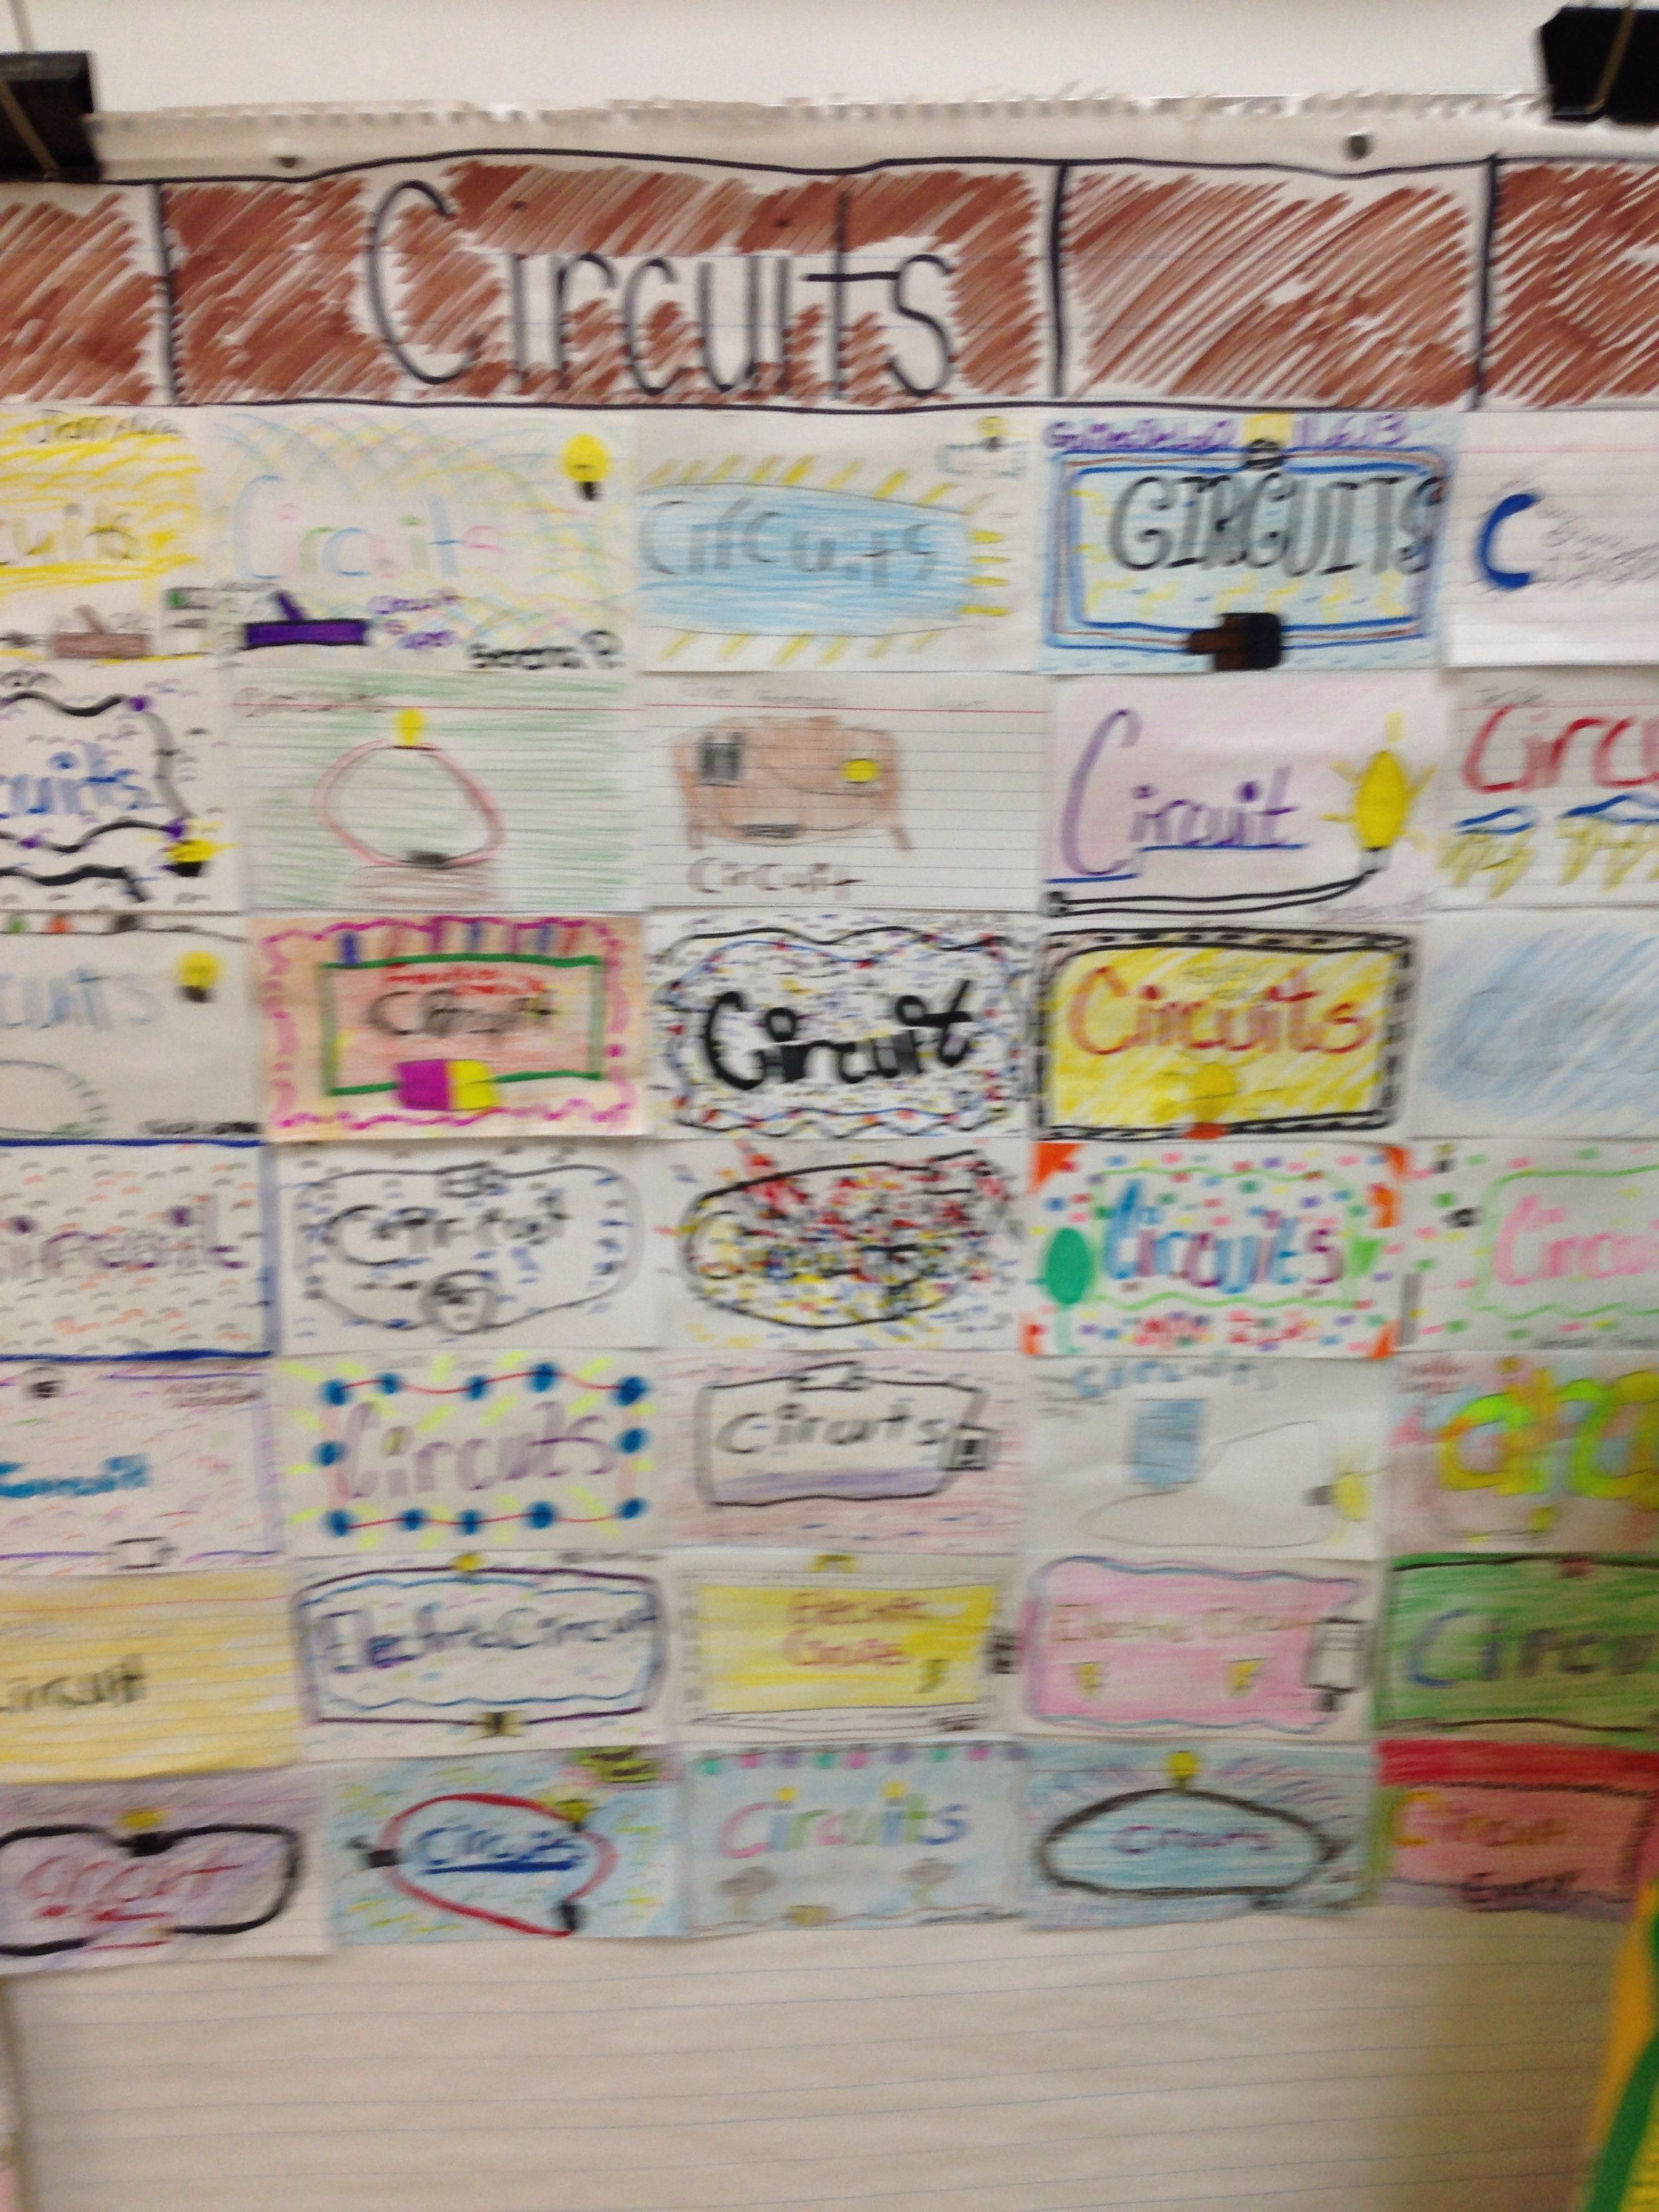 A Graffiti Wall The Students Make After A Science Lab